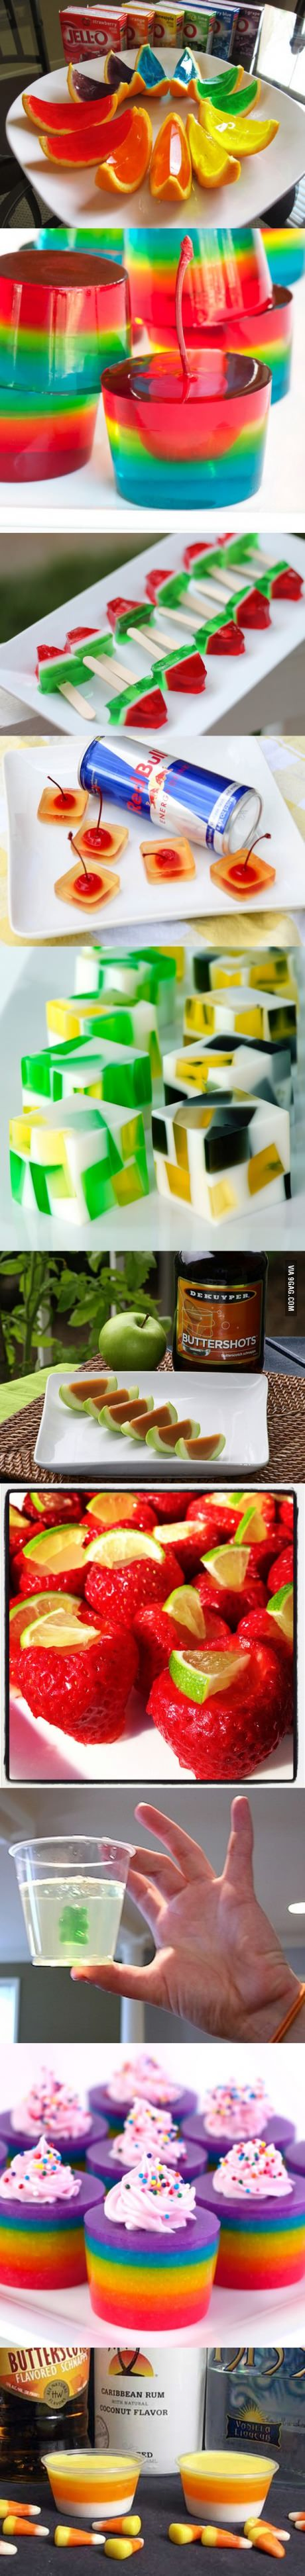 10 different ways to do jello shots, this is amazing.: